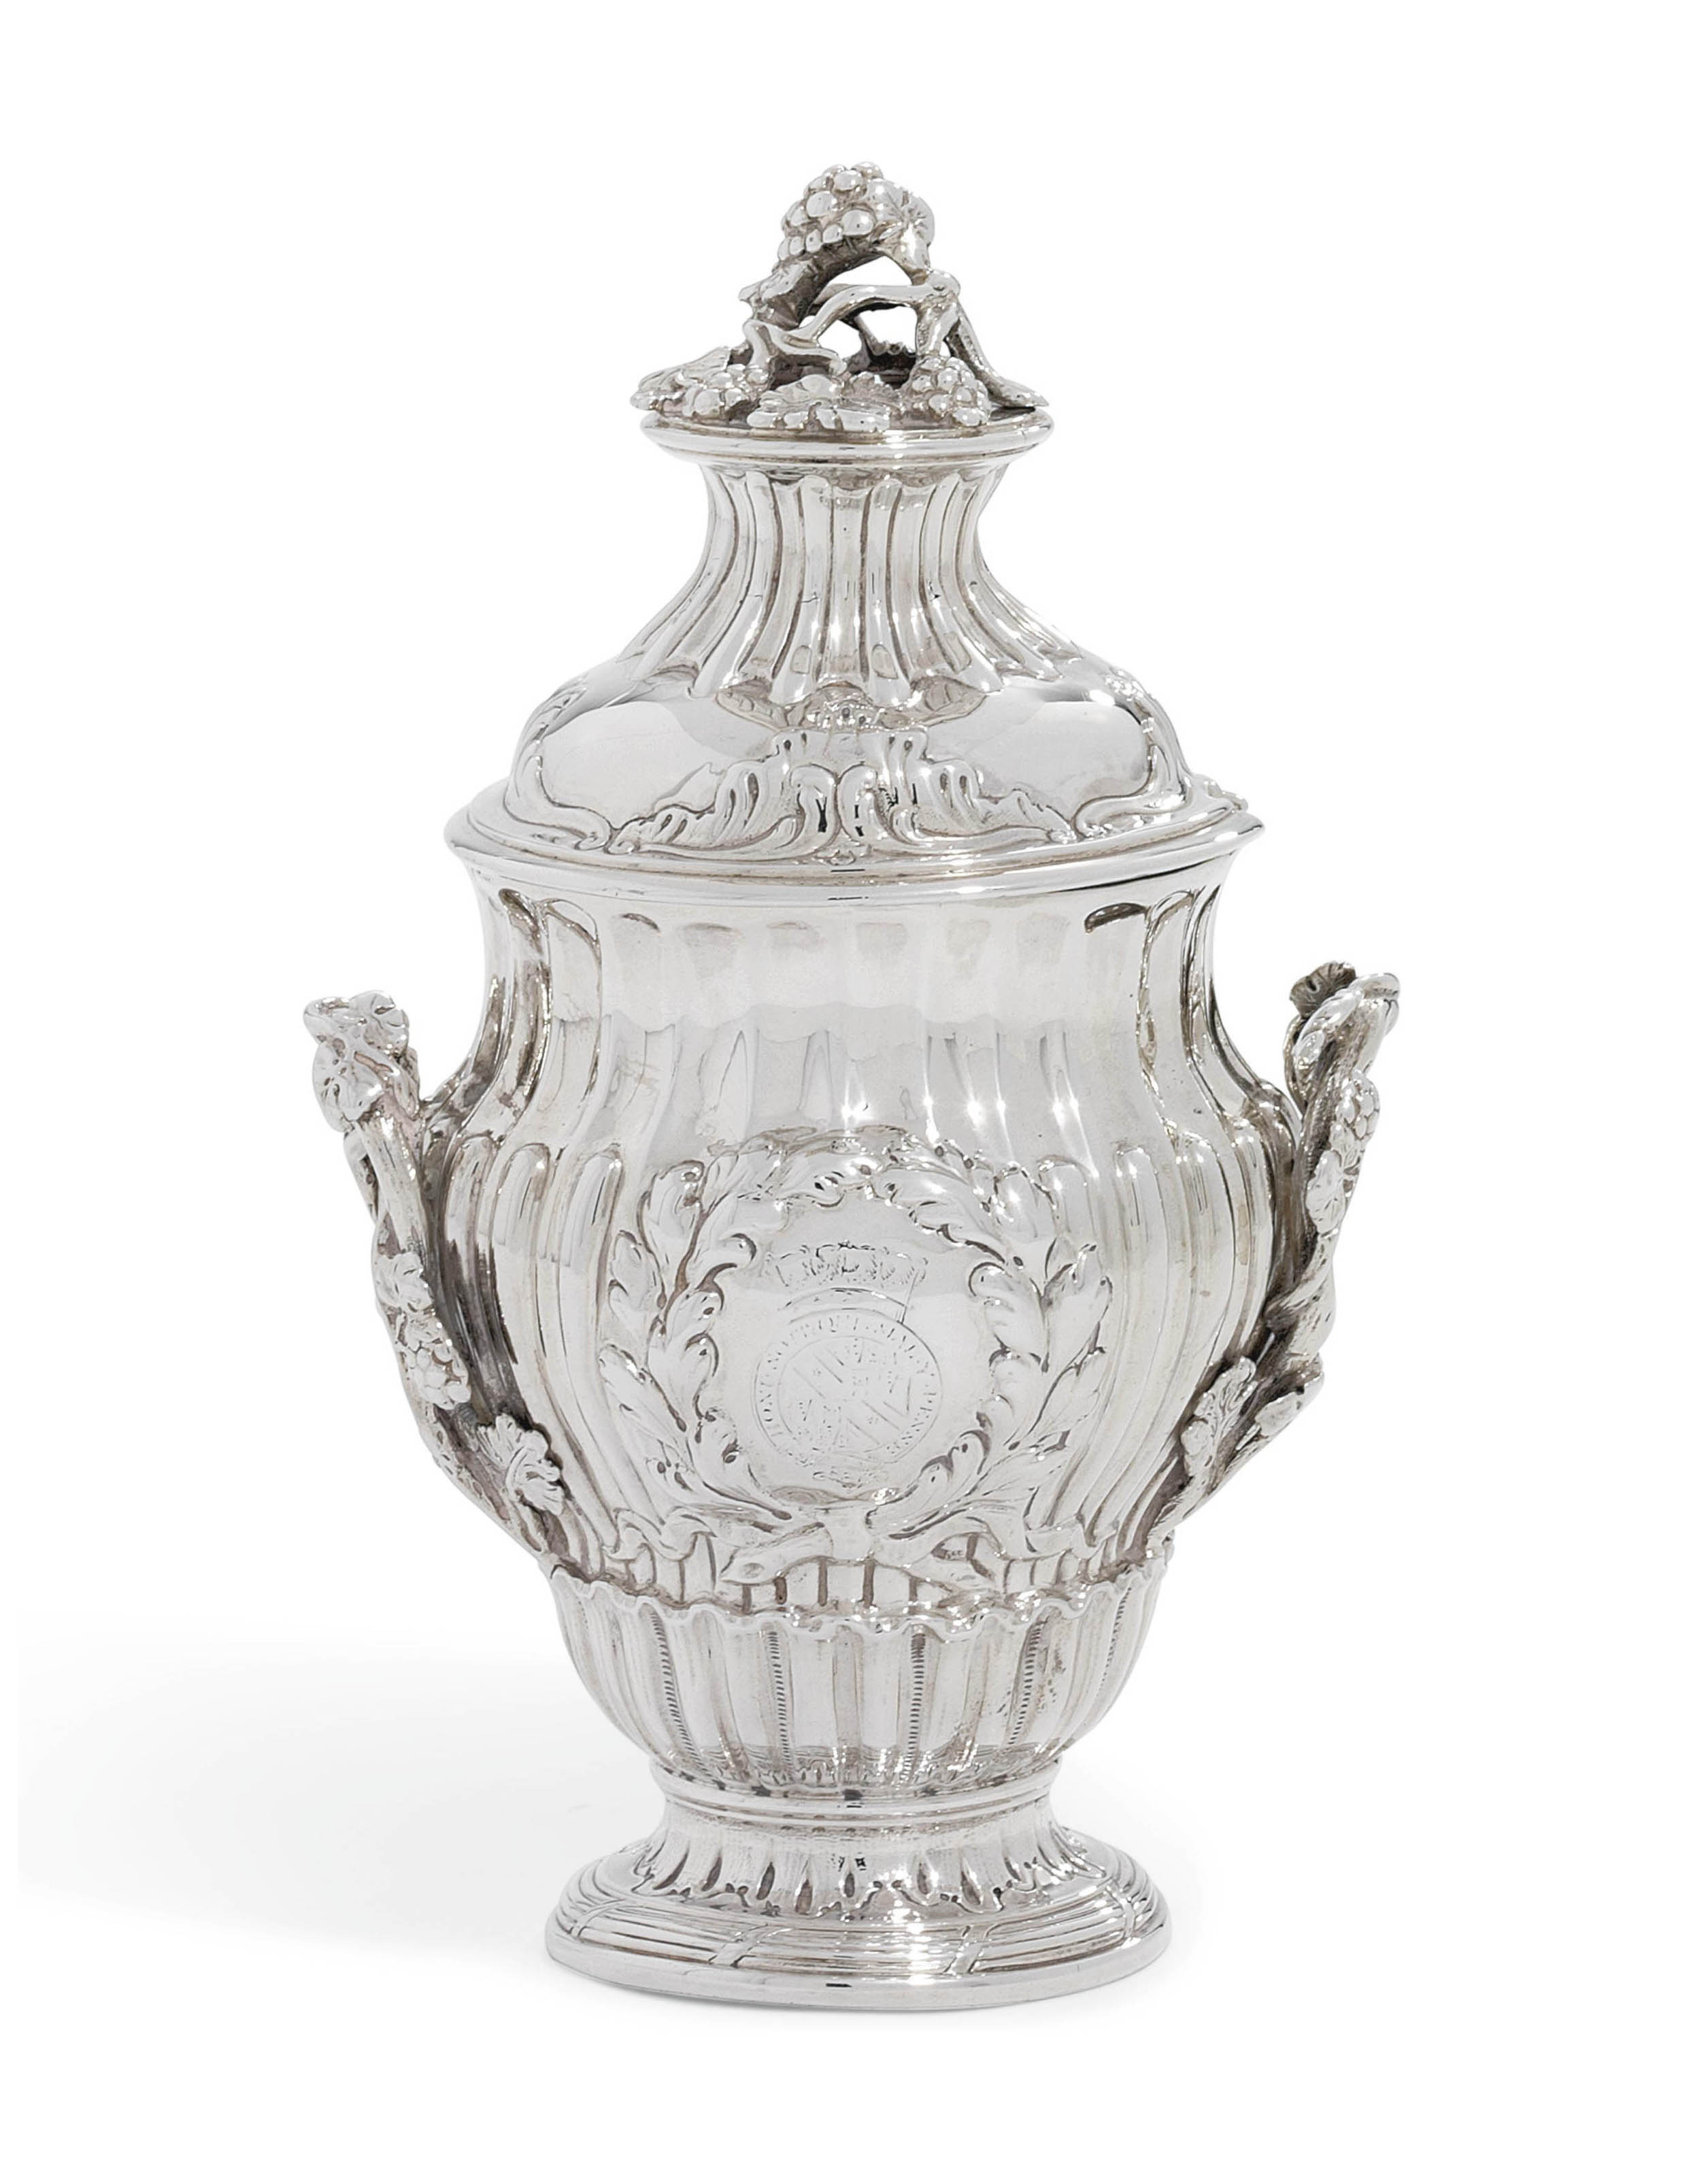 A GEORGE III SILVER CONDIMENT-VASE